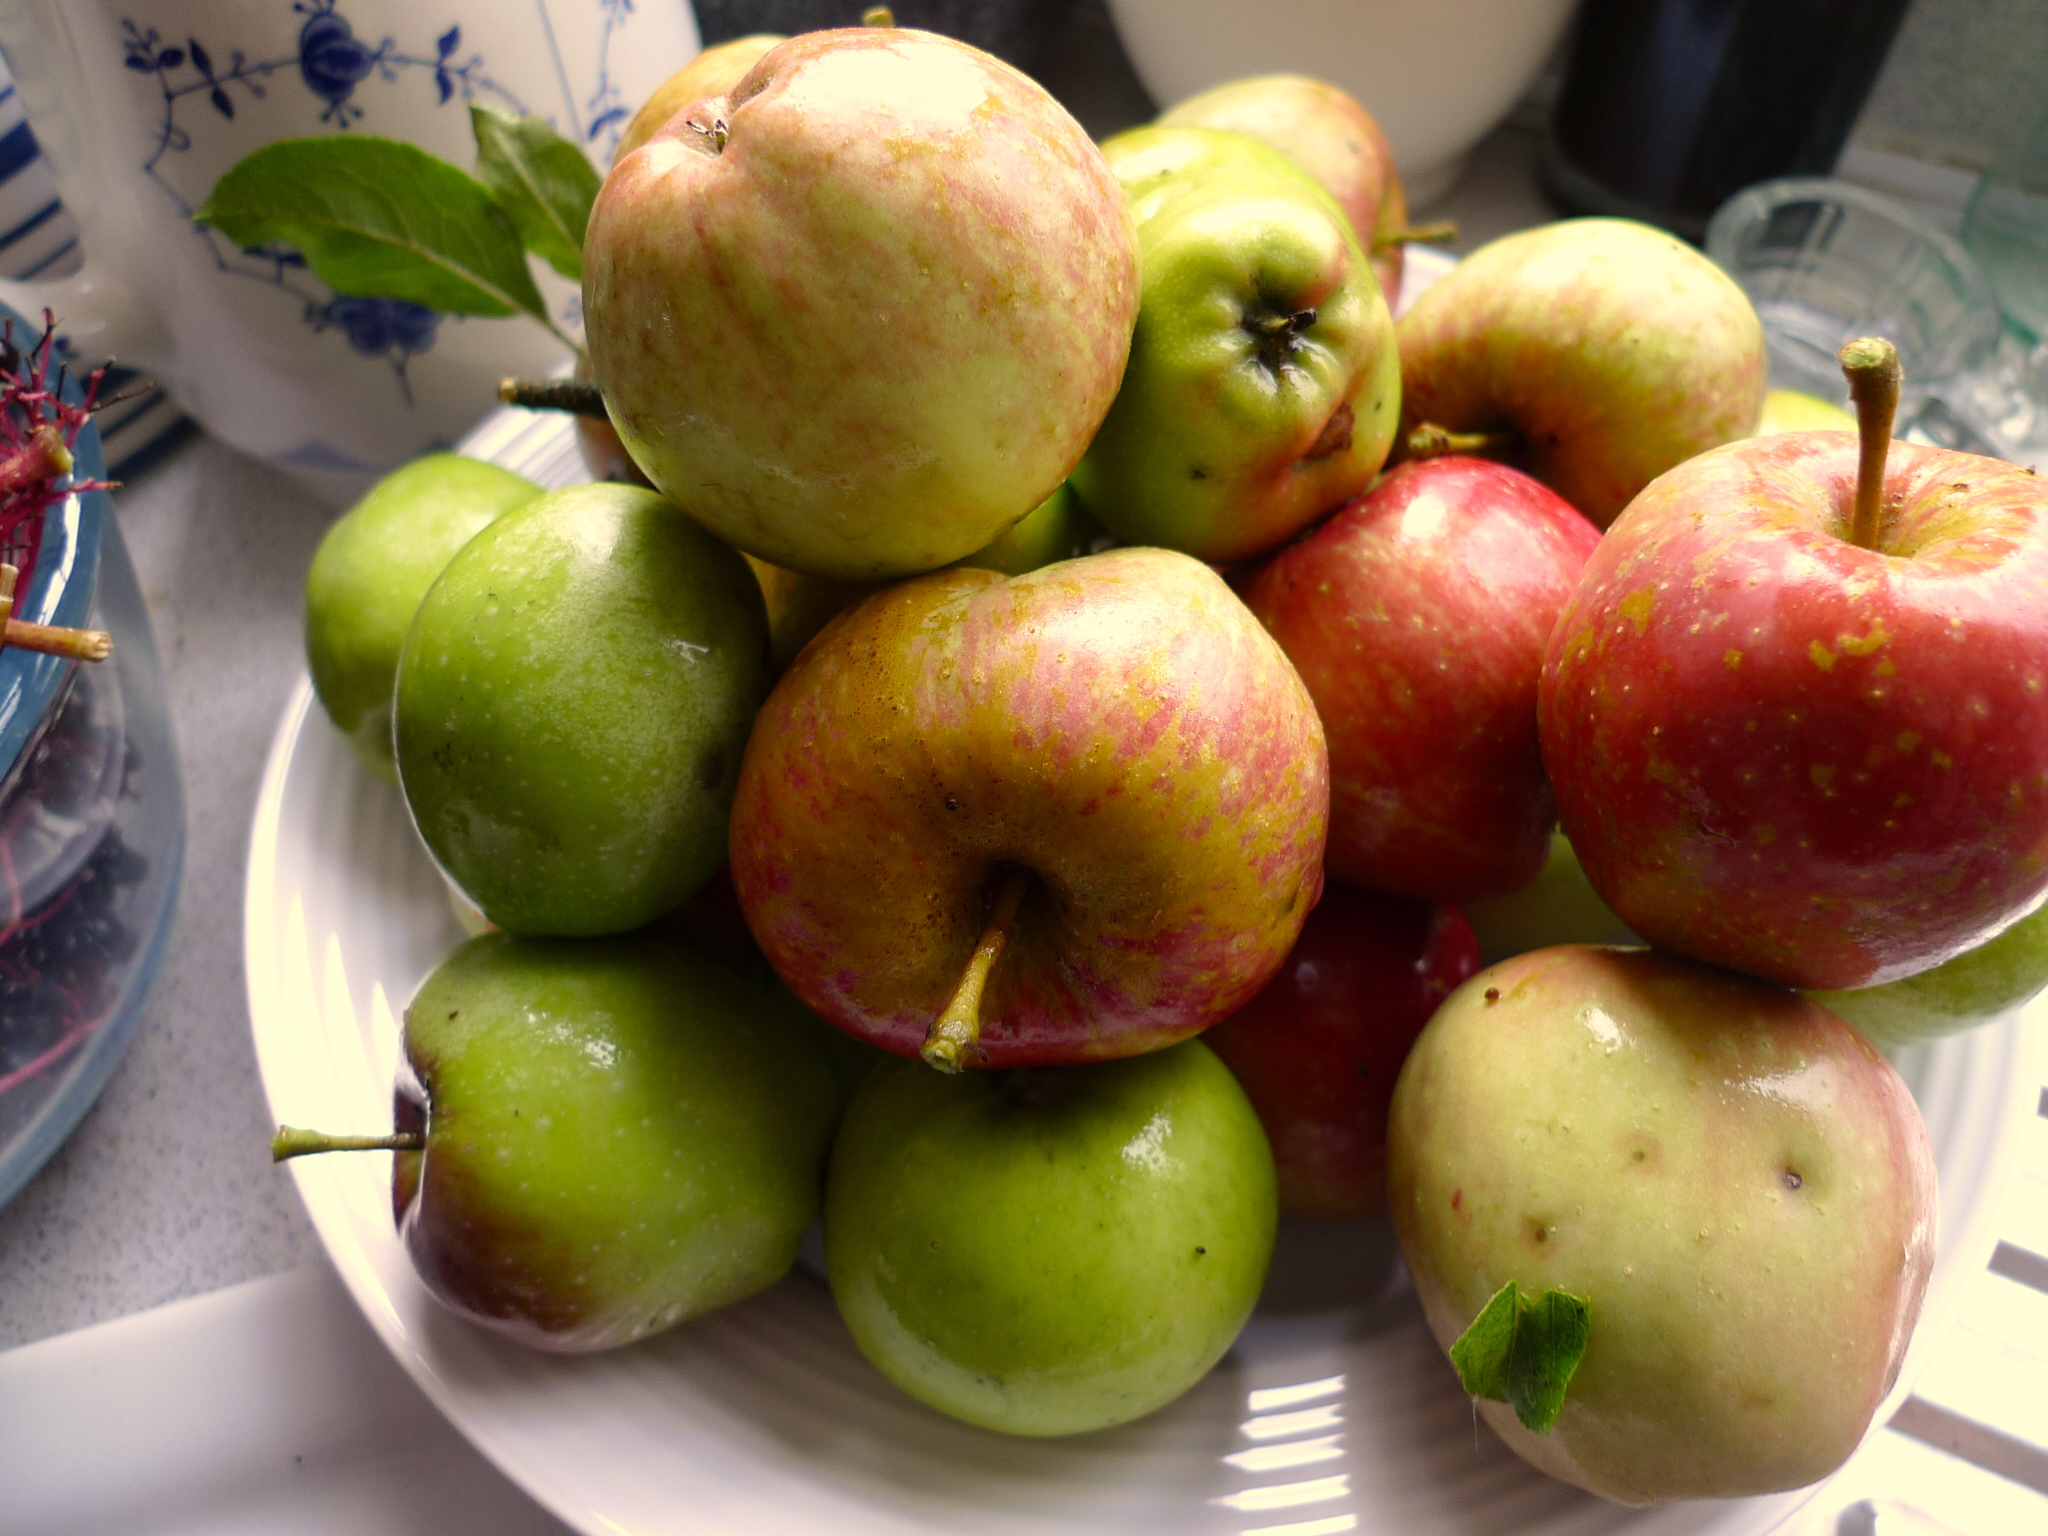 Homegrown apples